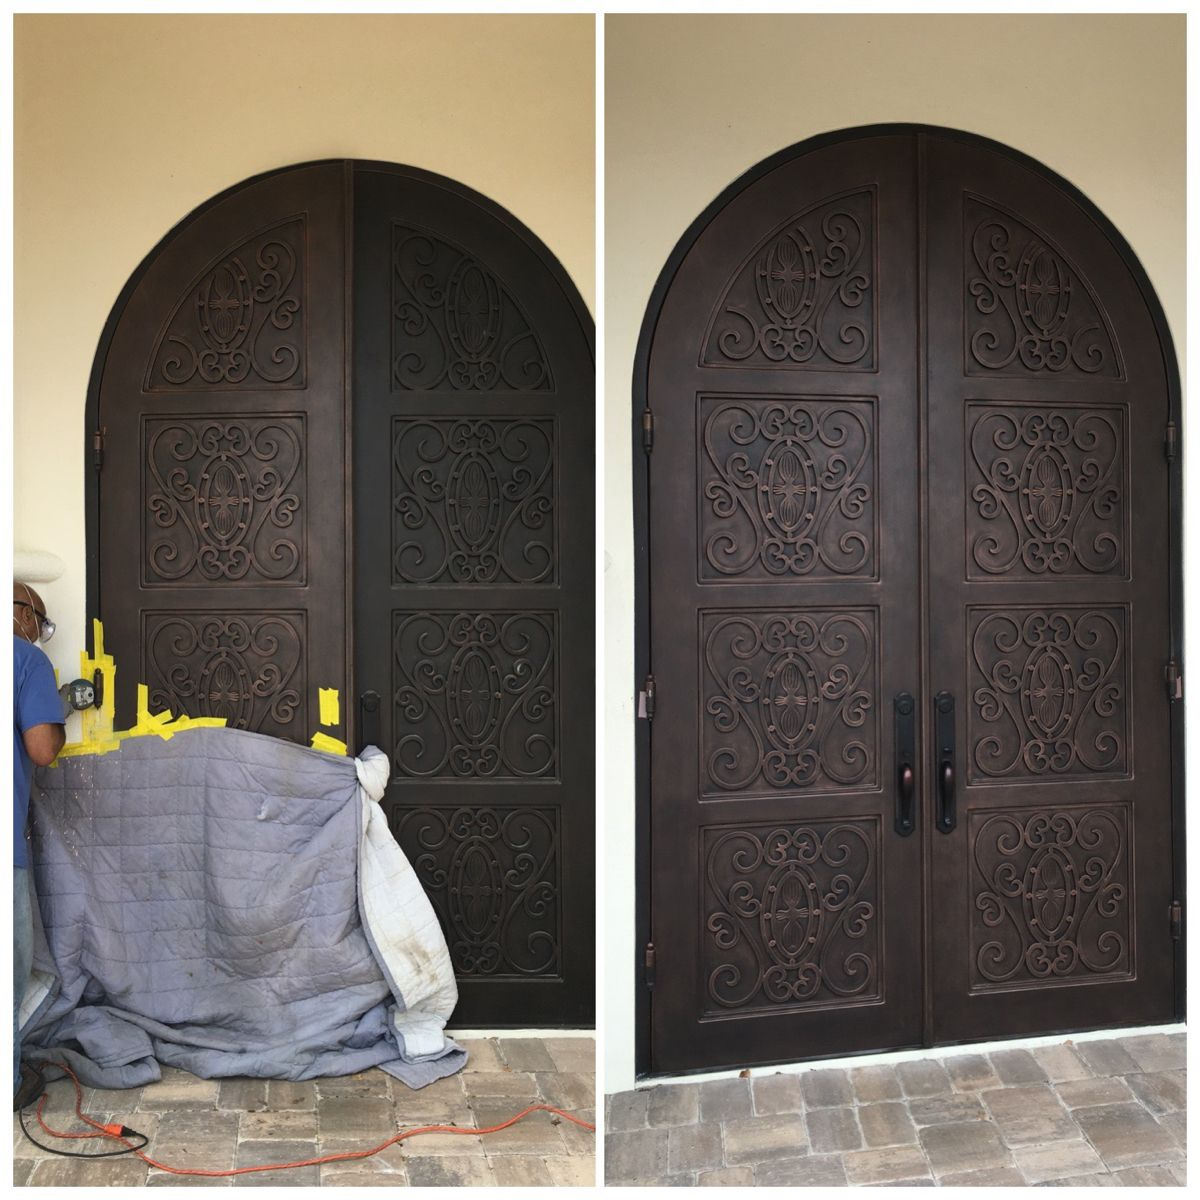 Big 10ft Full Arch Iron Door Needed A Hinge Replaced Welded On And A New Faux Finish Job Took Two Days But It Came